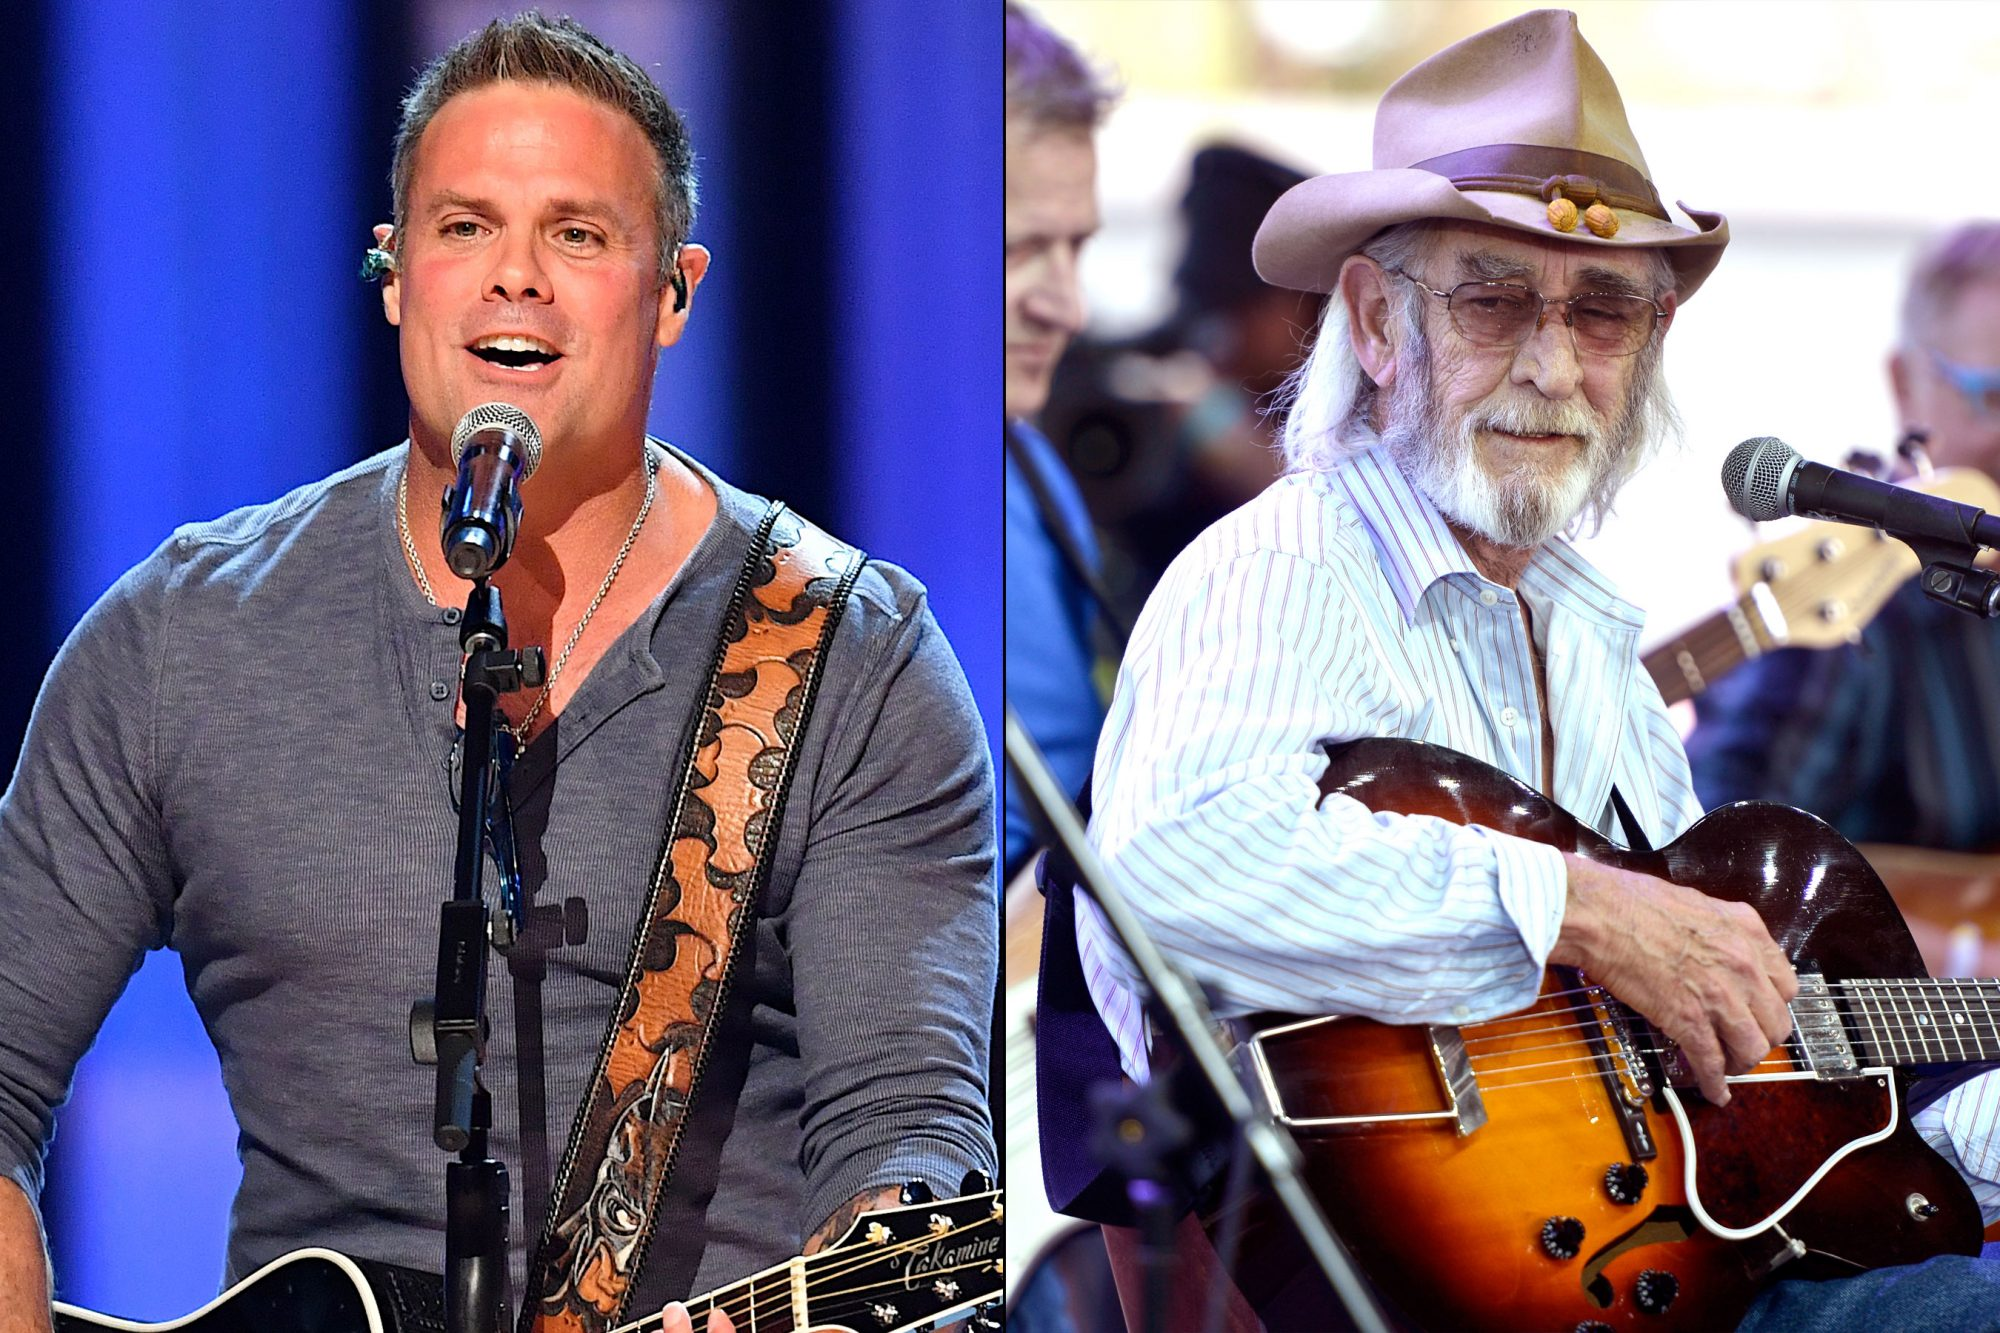 Troy Gentry and Don Williams